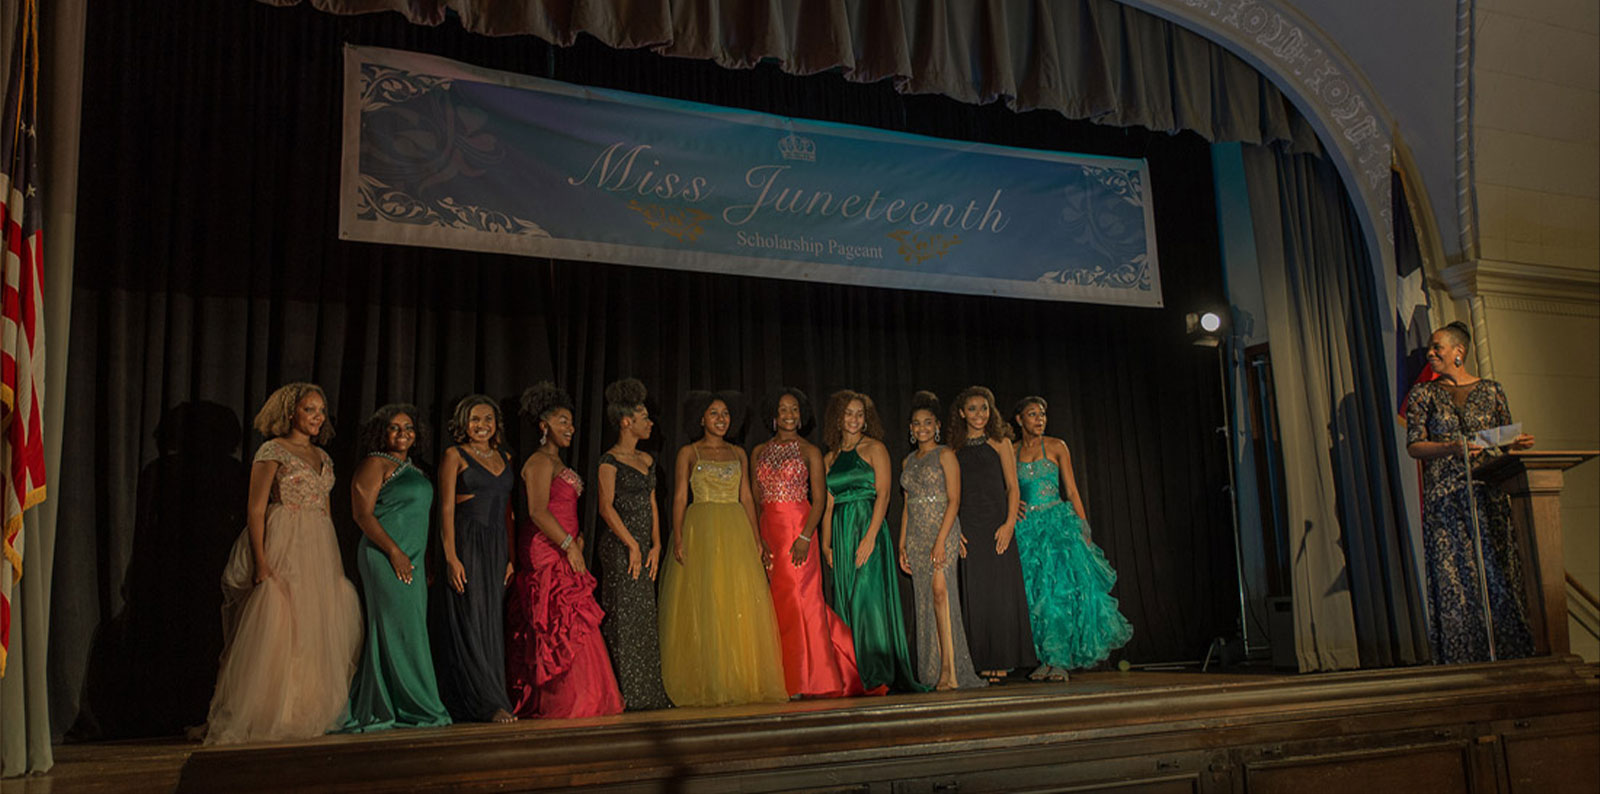 Miss Juneteenth Image